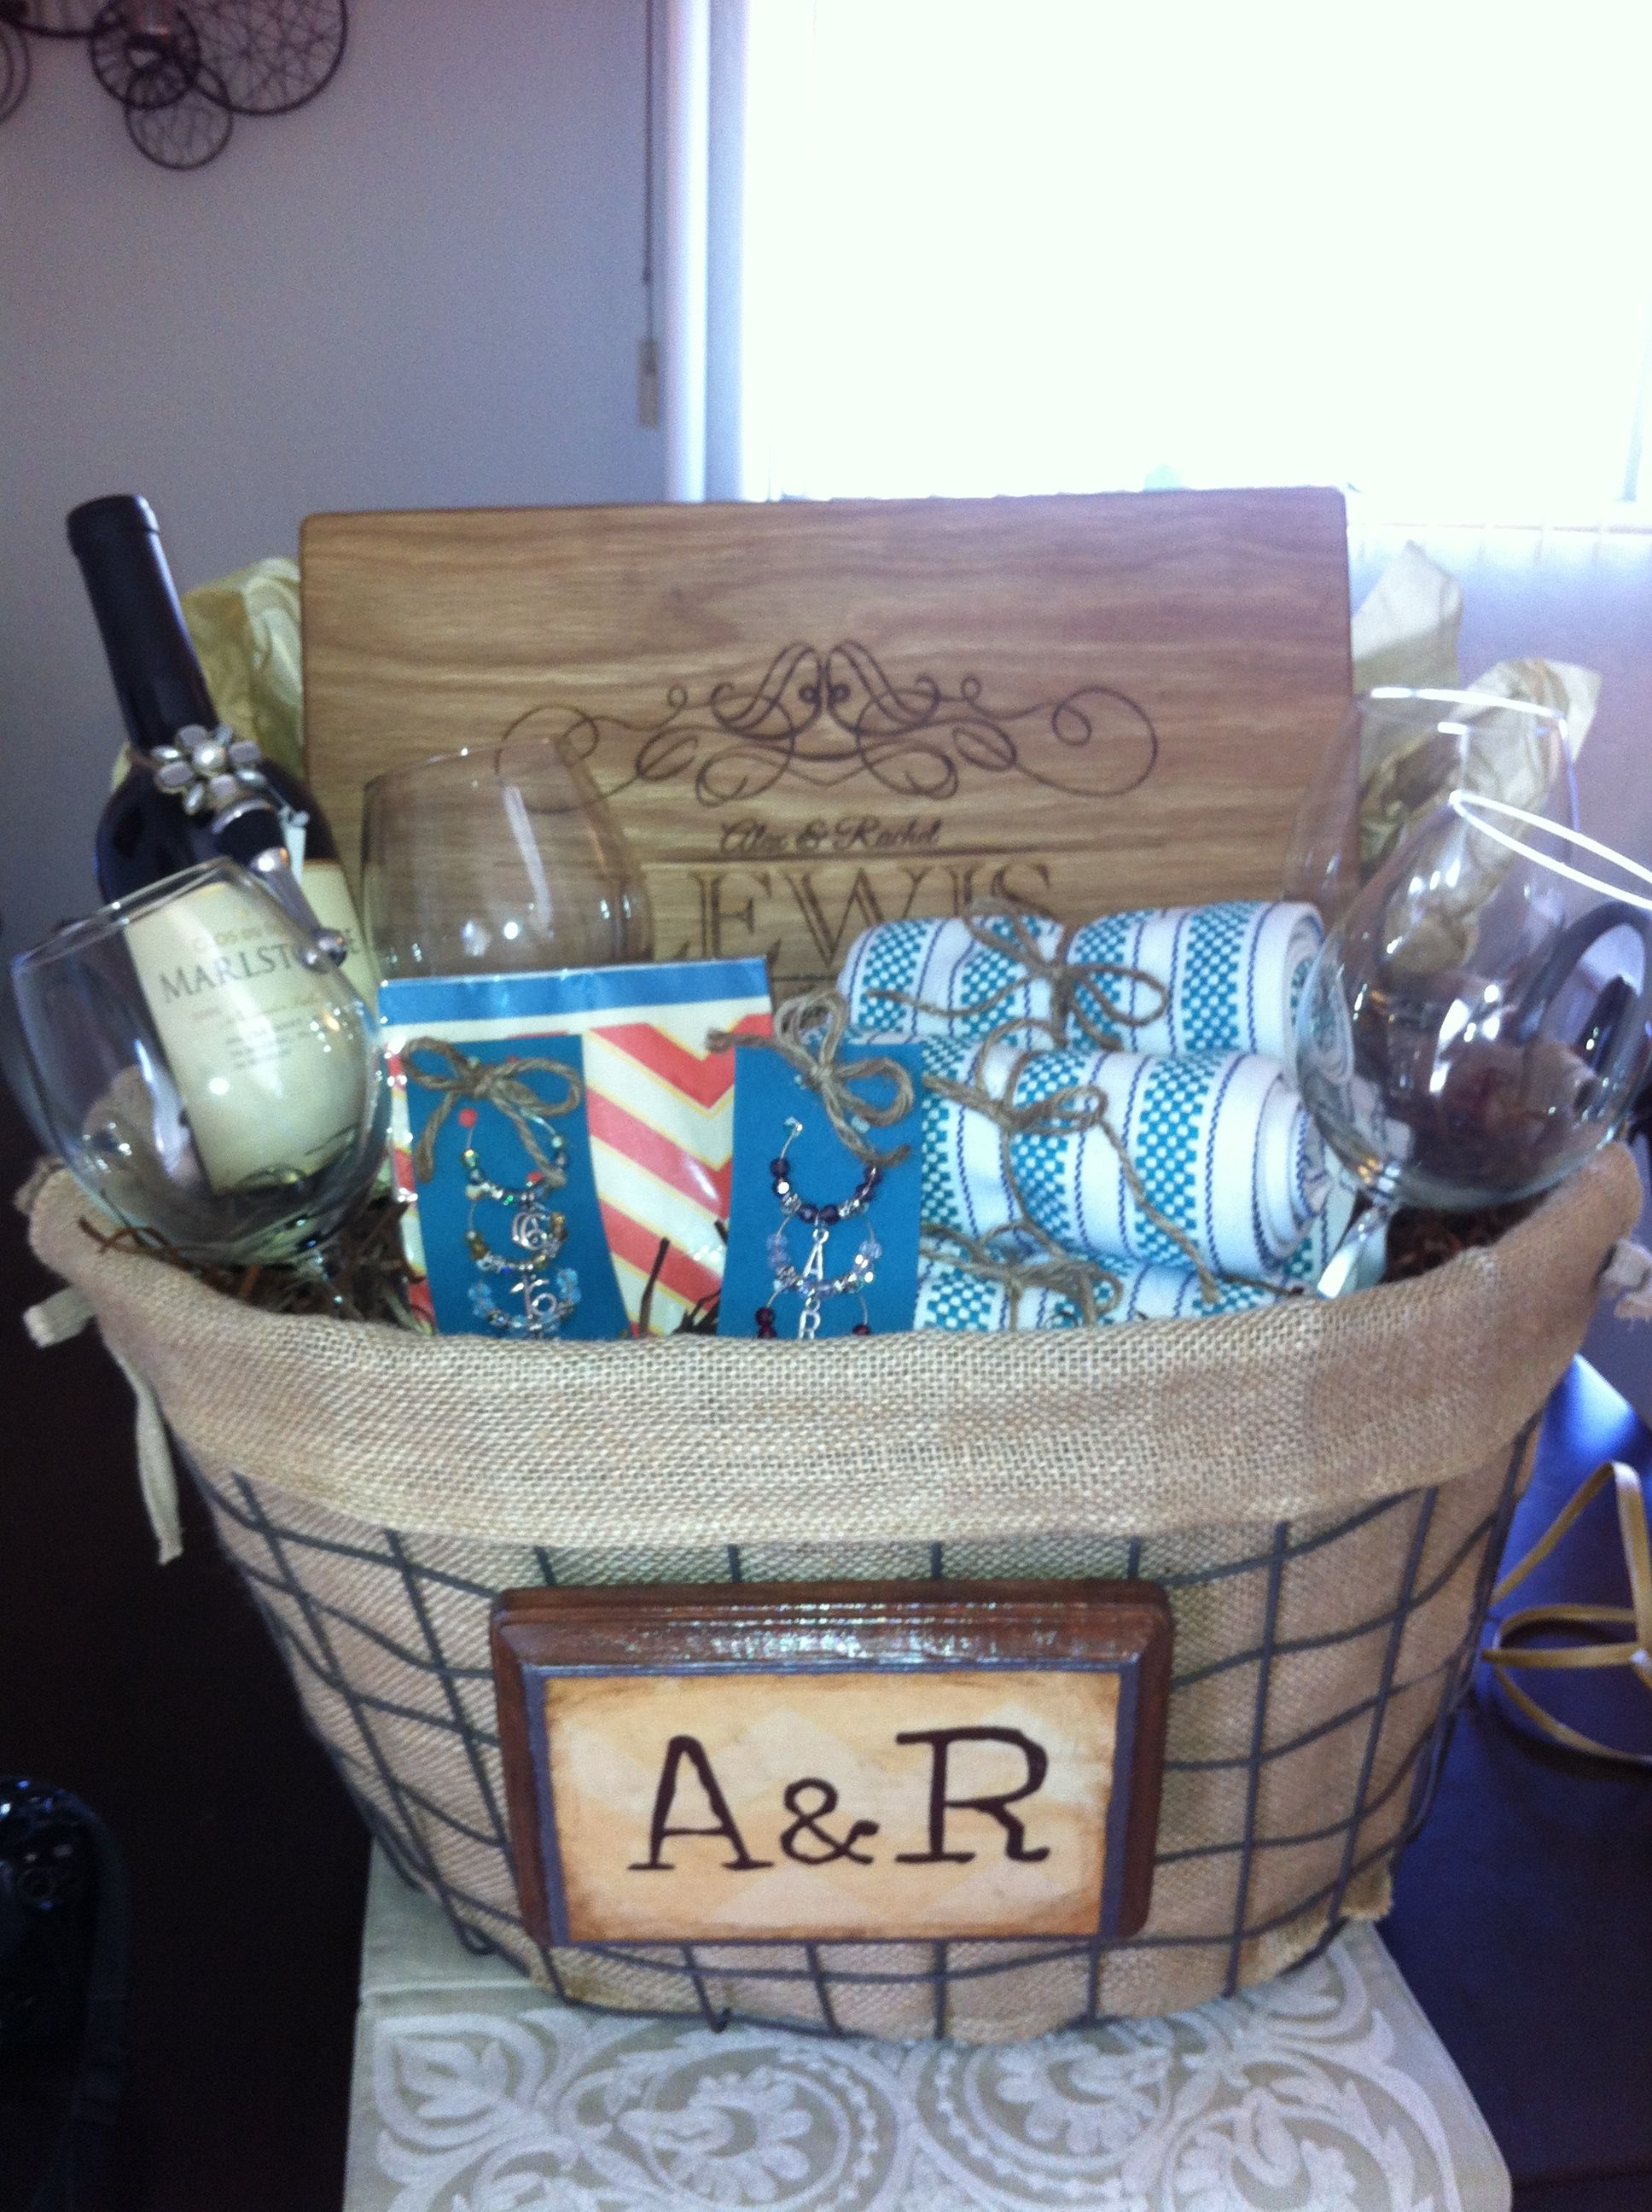 Bridal Shower Gift Basket Could Use Bloxstyles Personalized Cutting Board